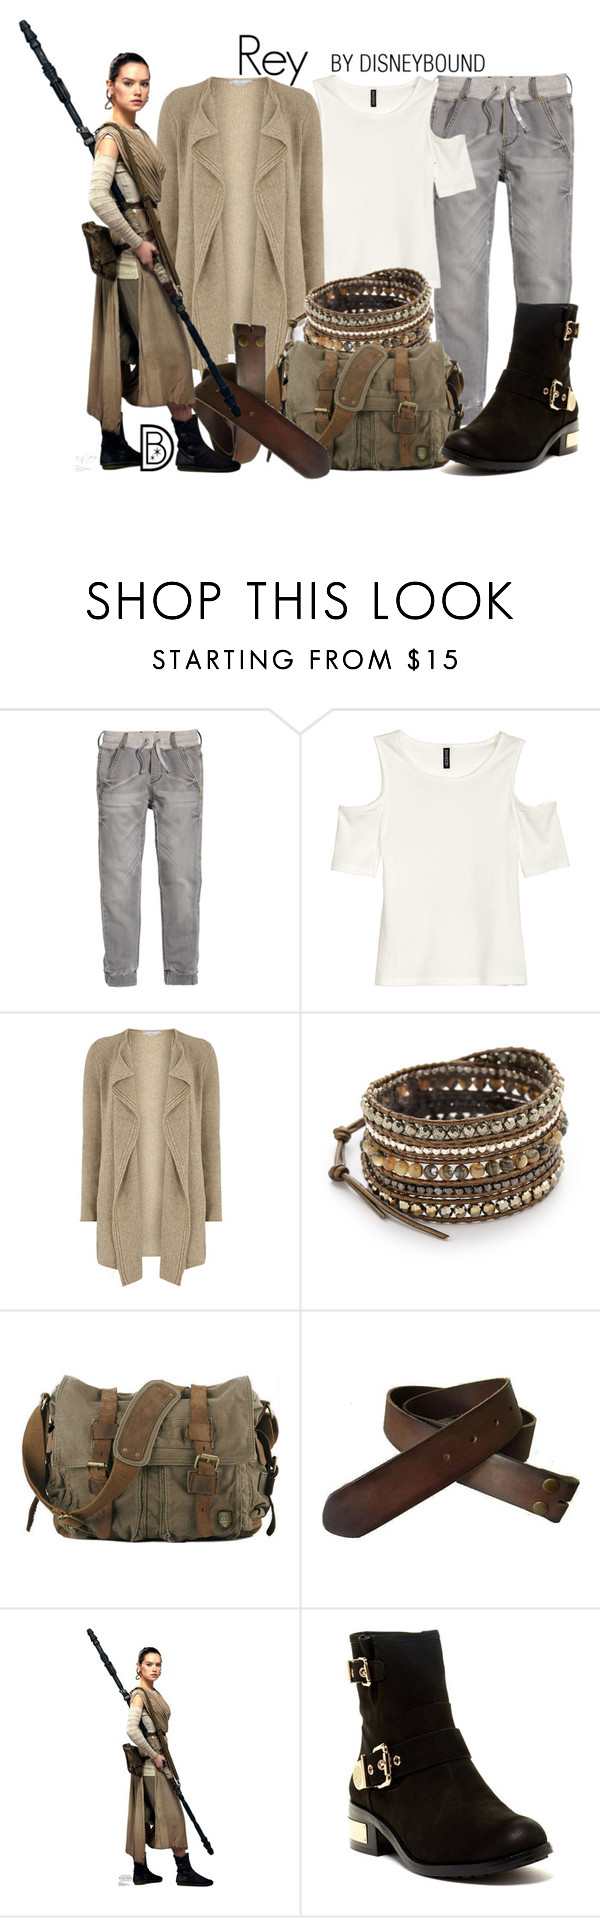 """Rey"" by leslieakay ❤ liked on Polyvore featuring Dorothy Perkins, Chan Luu, Vince Camuto, women's clothing, women's fashion, women, female, woman, misses and juniors"